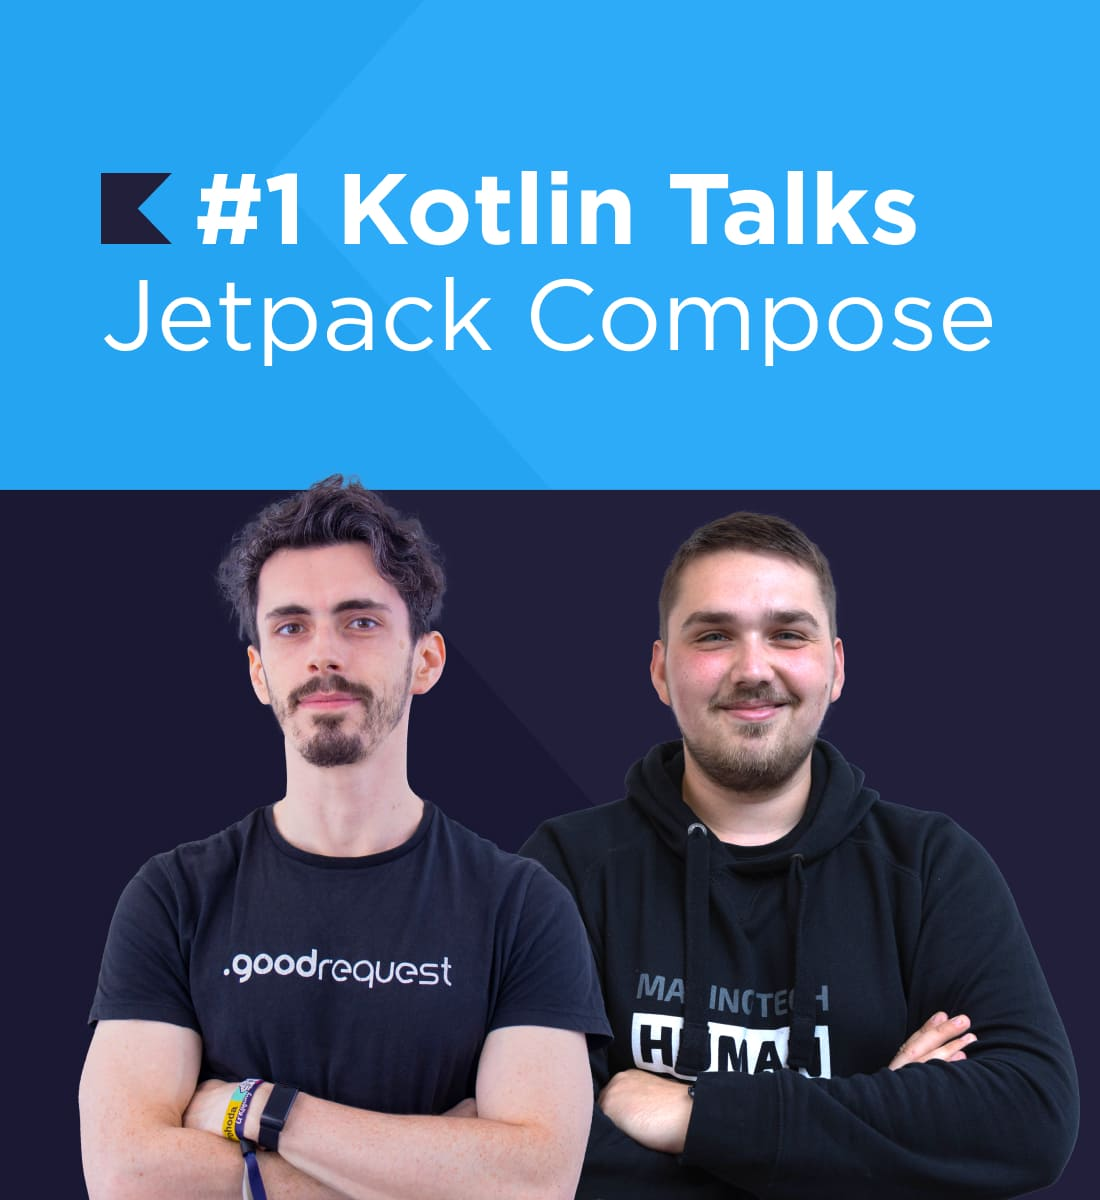 #1 Kotlin Talks - Jetpack Compose